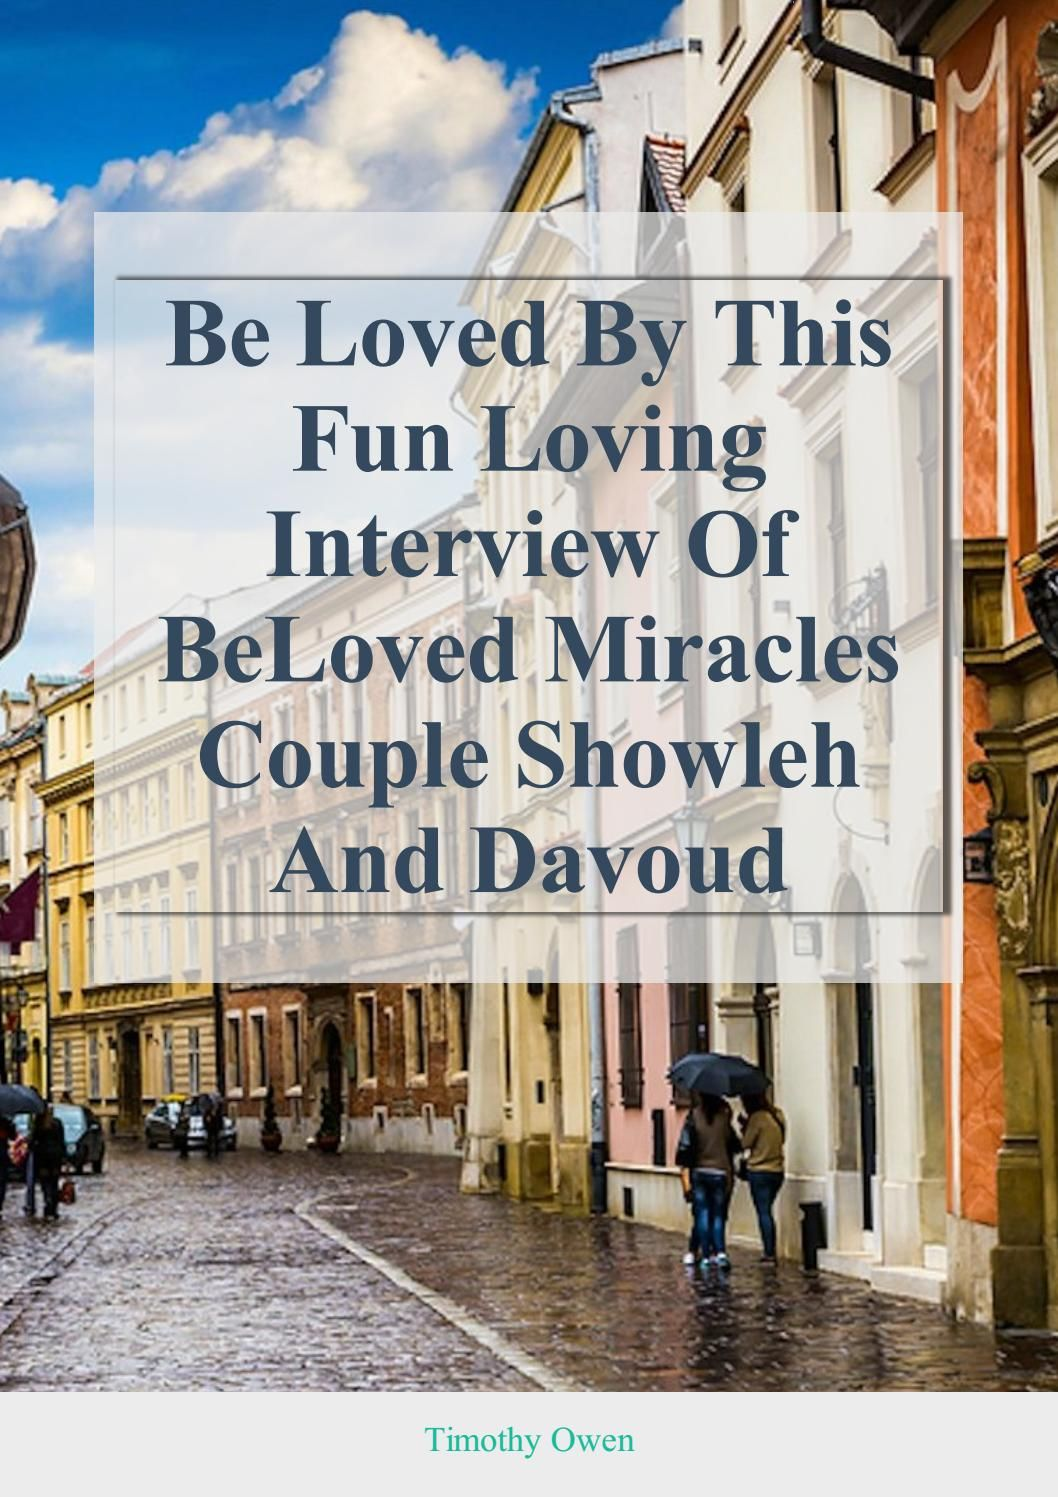 Be Loved By This Fun Loving Interview Of Beloved Miracles Couple Showleh And Davoud In California